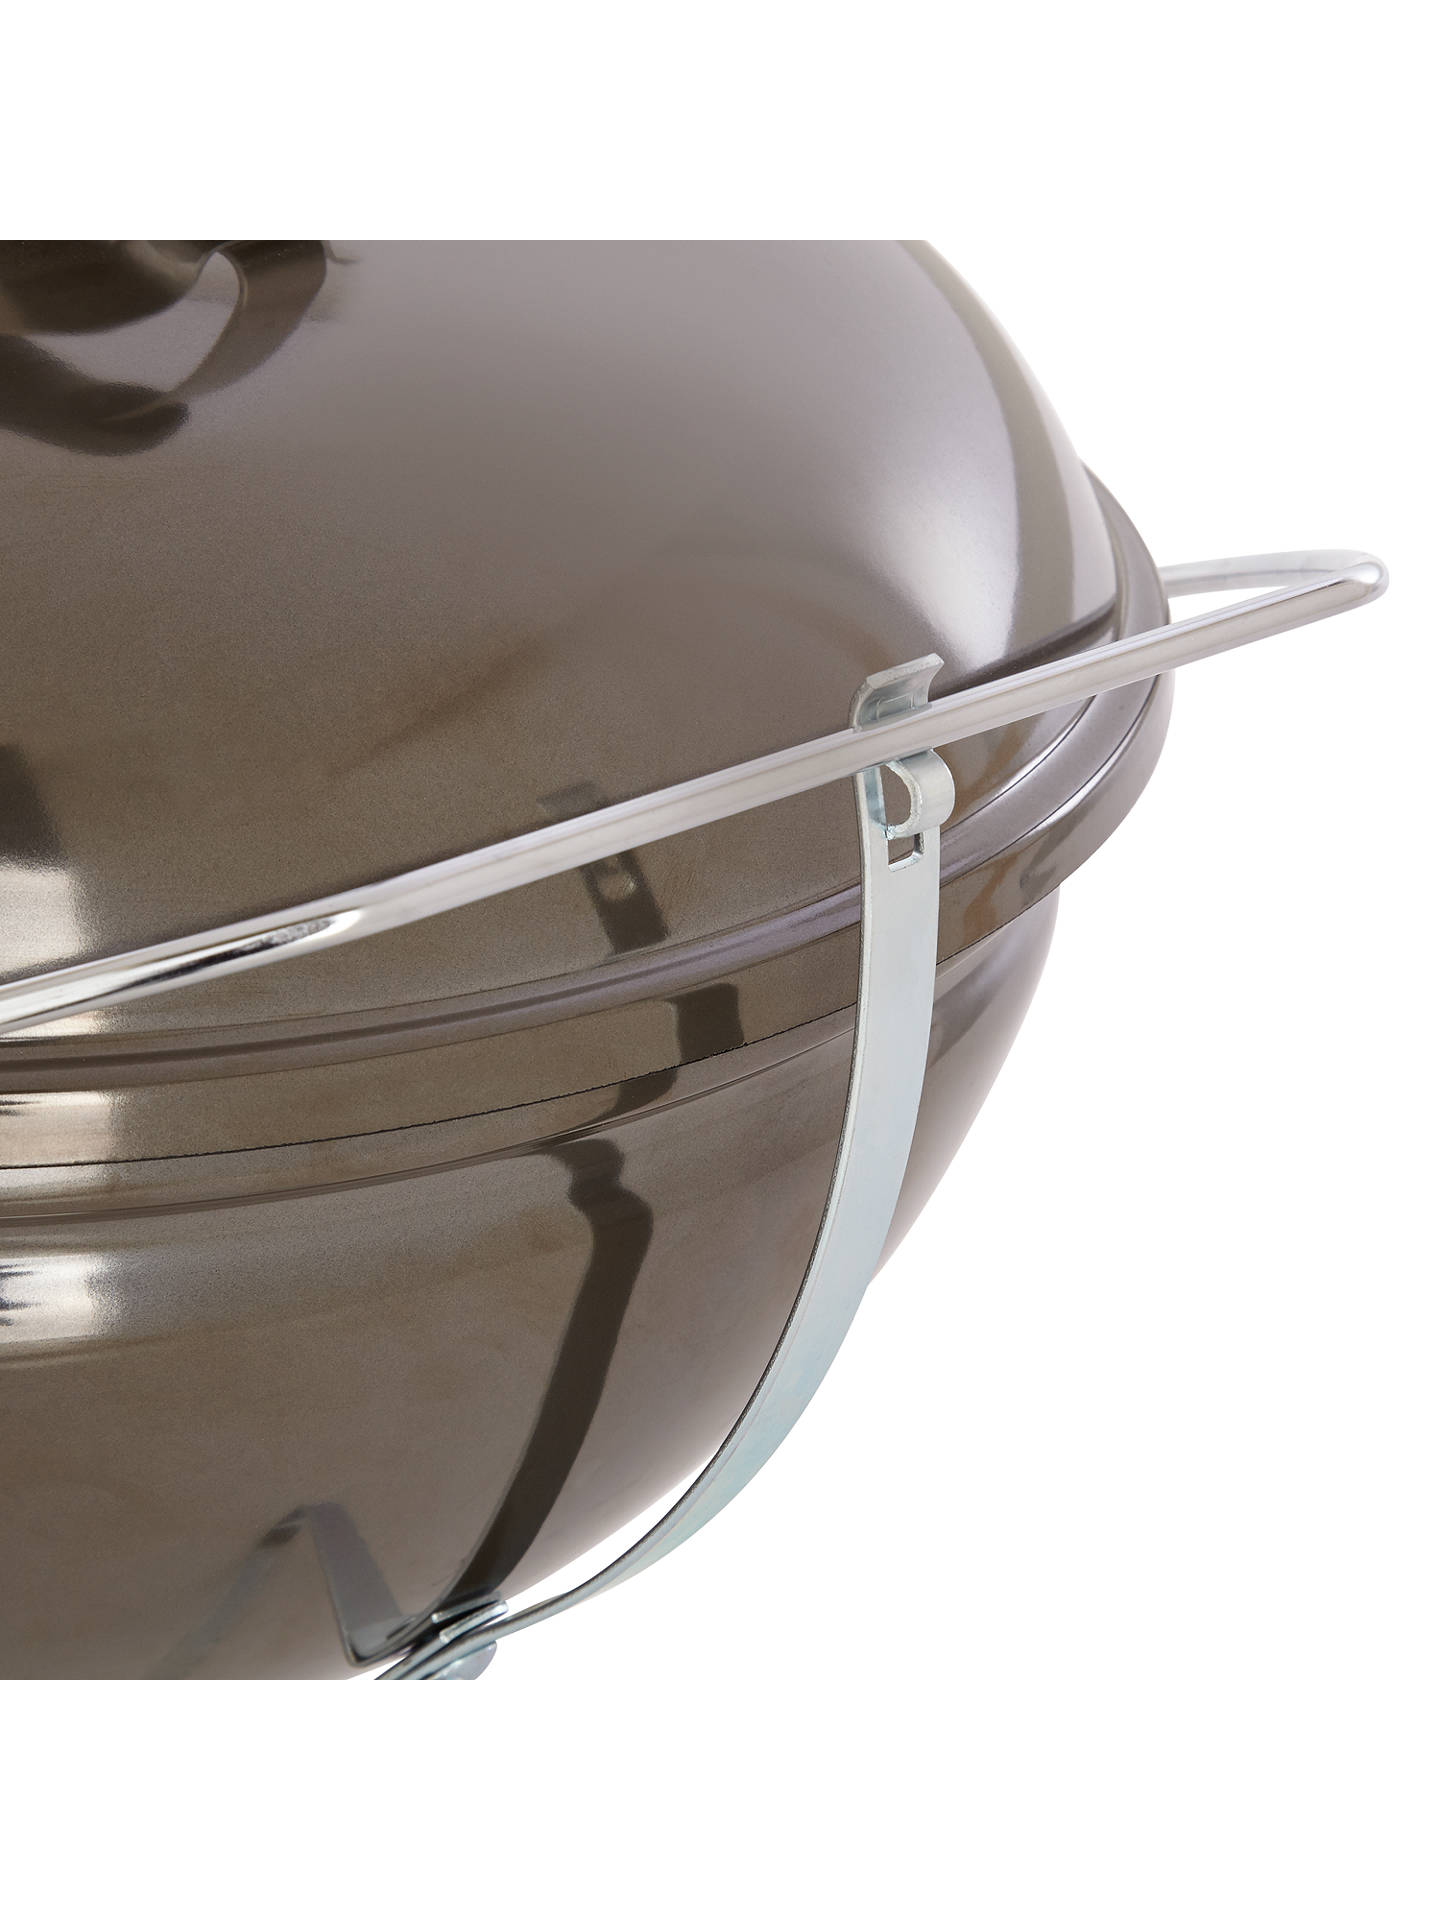 Buy Weber Smokey Joe Premium Kettle Charcoal BBQ Online at johnlewis.com